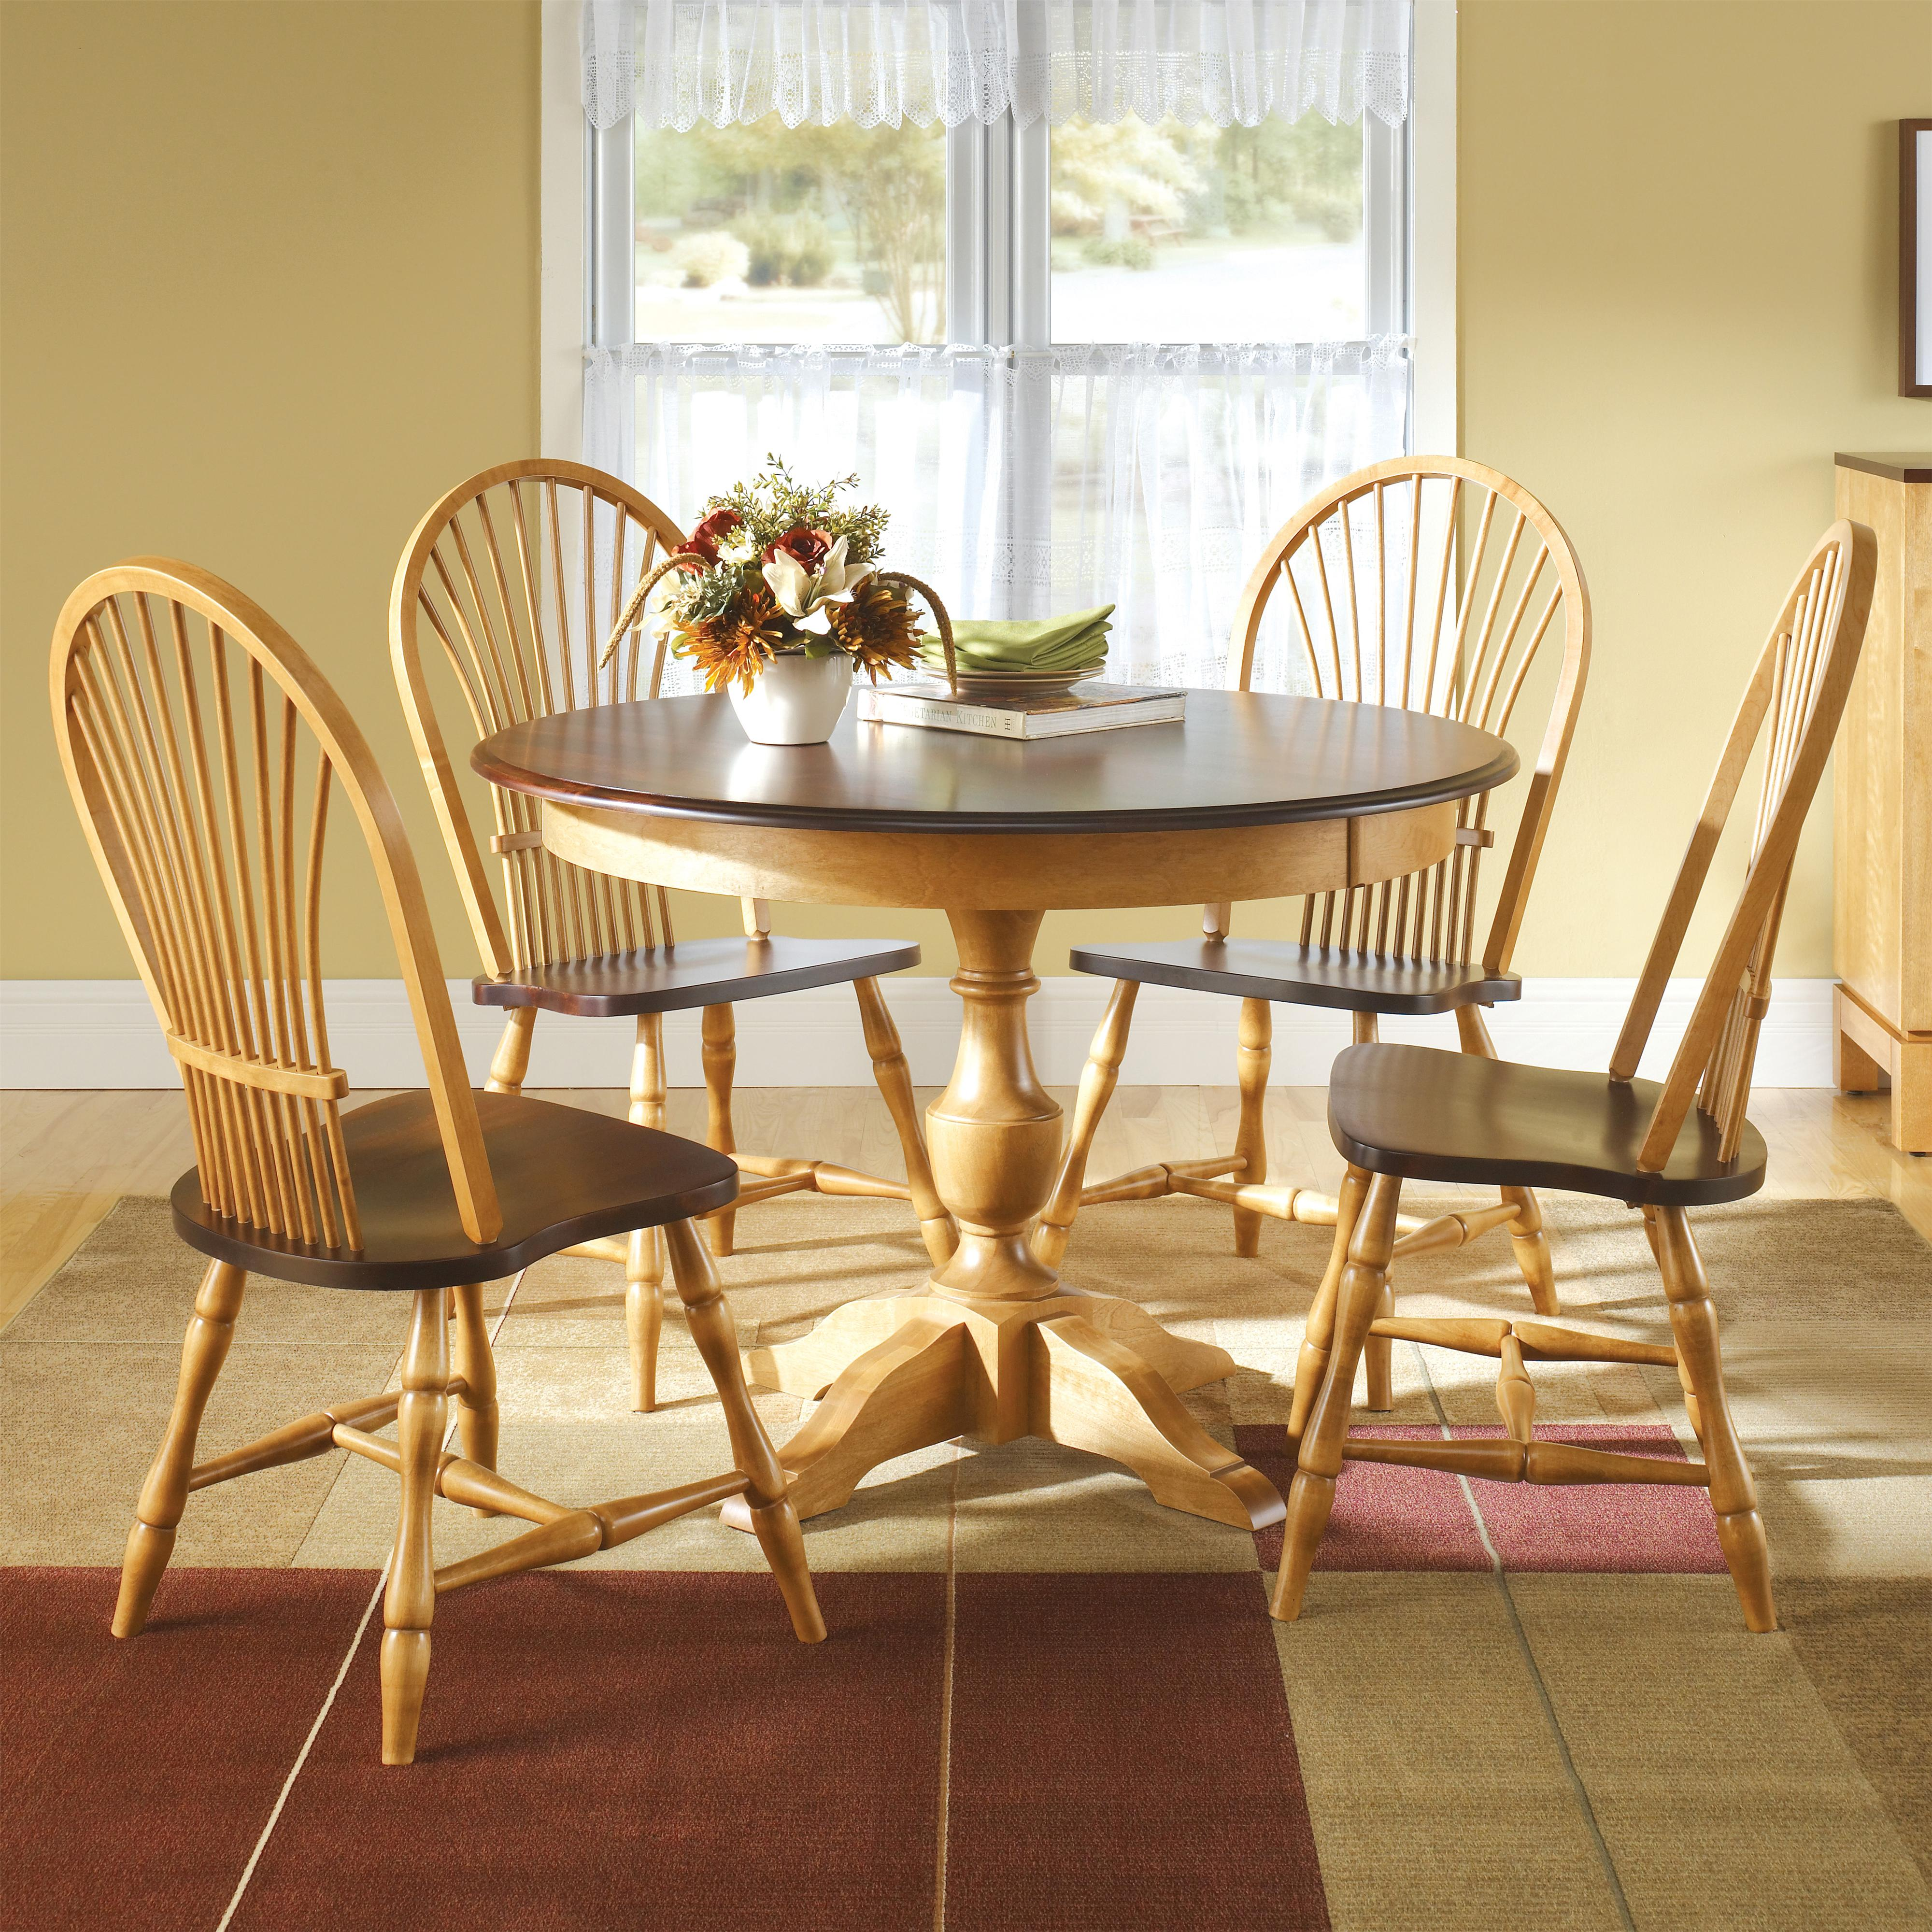 Canadel Custom Dining Customizable Round Table Set With 4